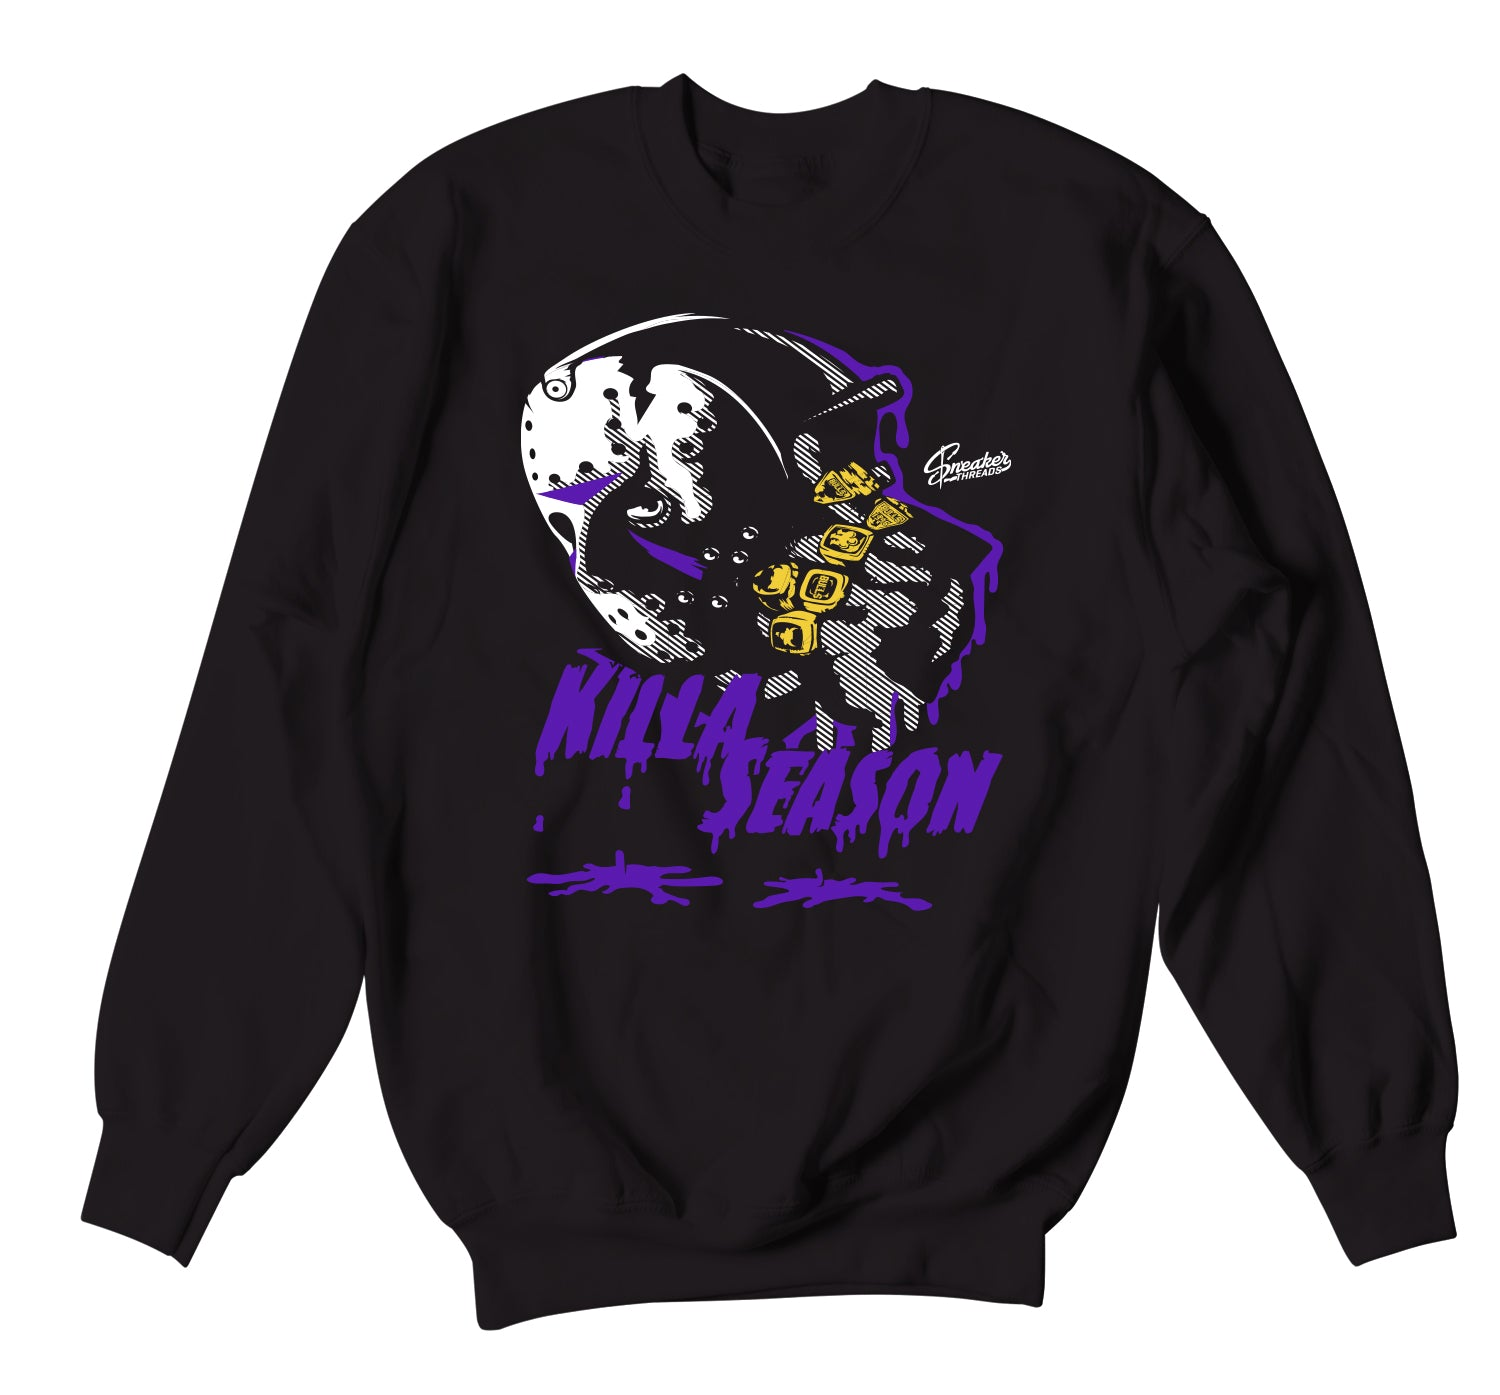 Jordan 12 Dark Concord Killa Season Sweater